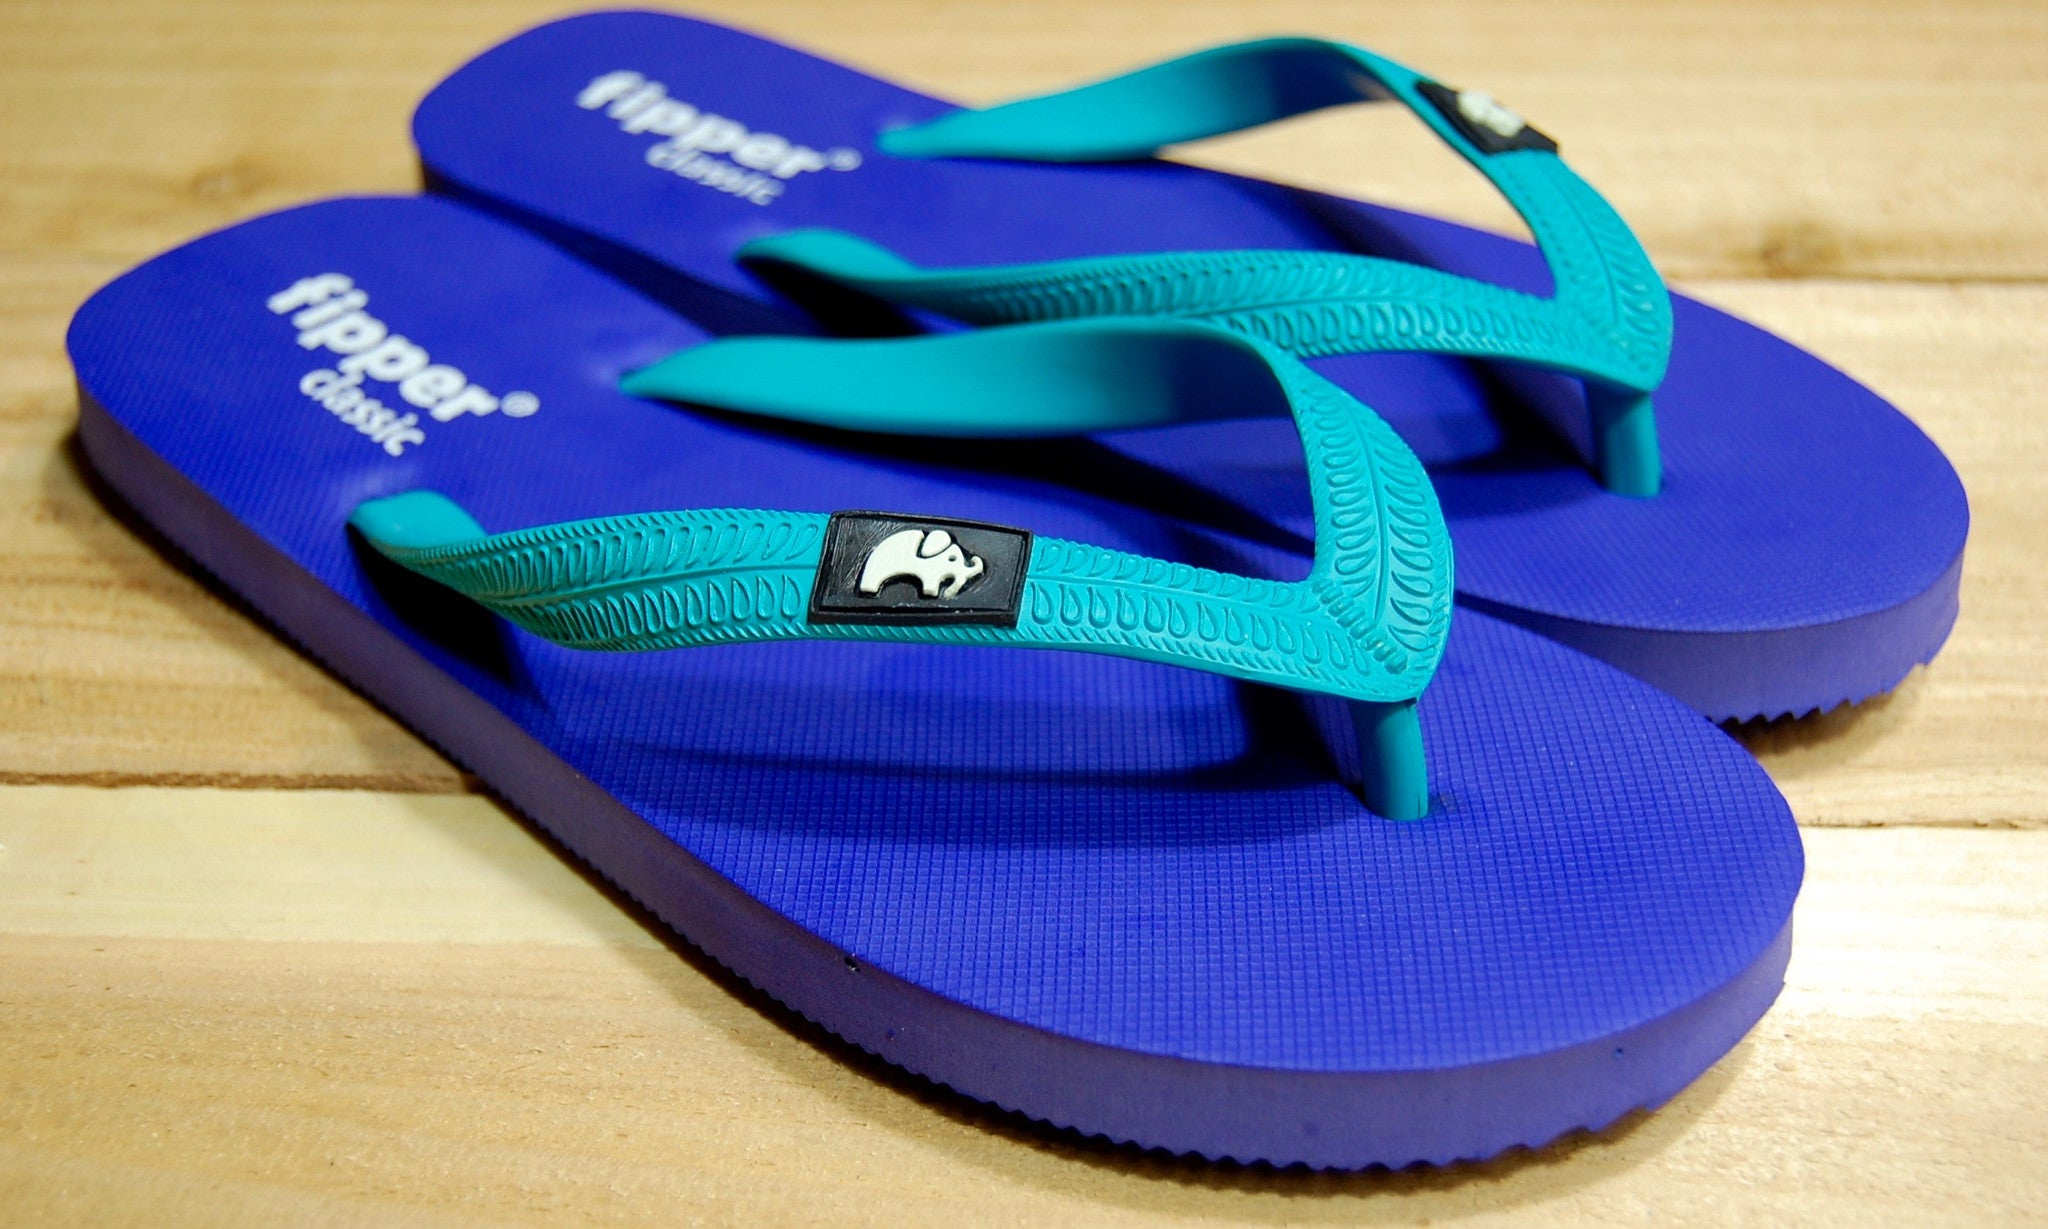 Purple Sole Turquoise Strap Fipper Classic Comfortable Natural Rubber Flip Flops for Men and Women Biodegradable Vegan Friendly